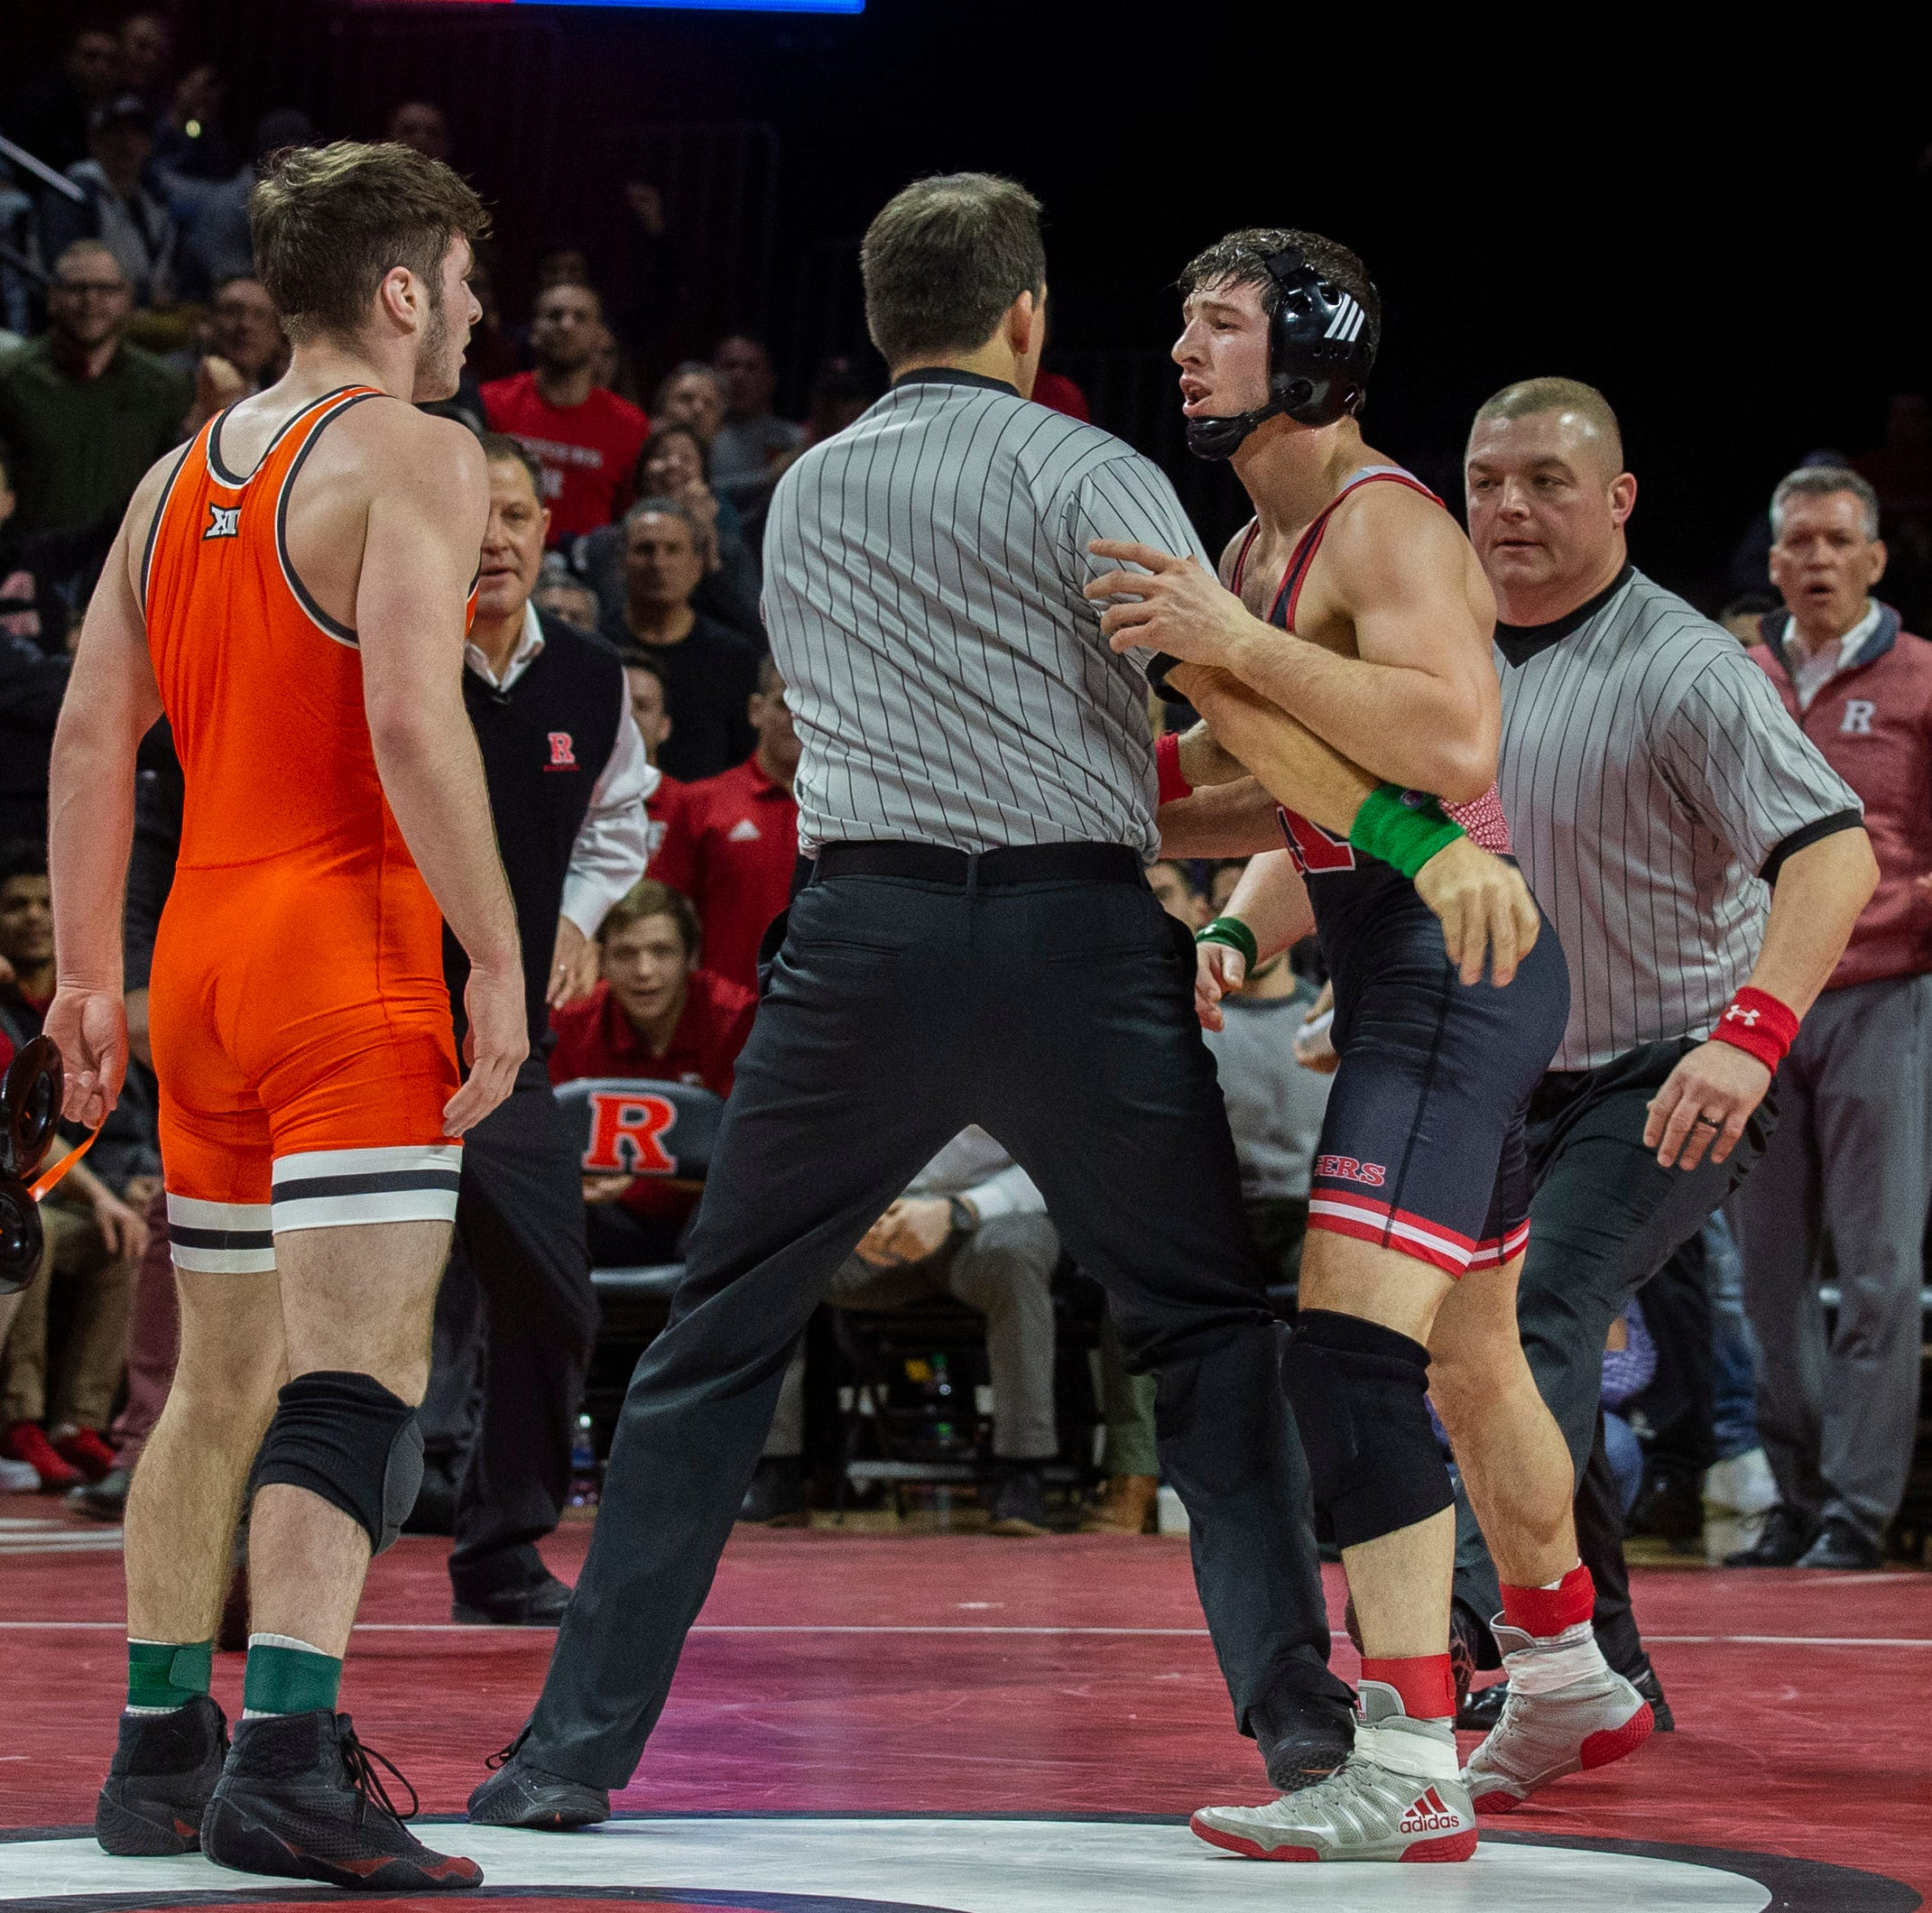 College wrestling: Nick Suriano of Rutgers defeated in controversial, wild bout